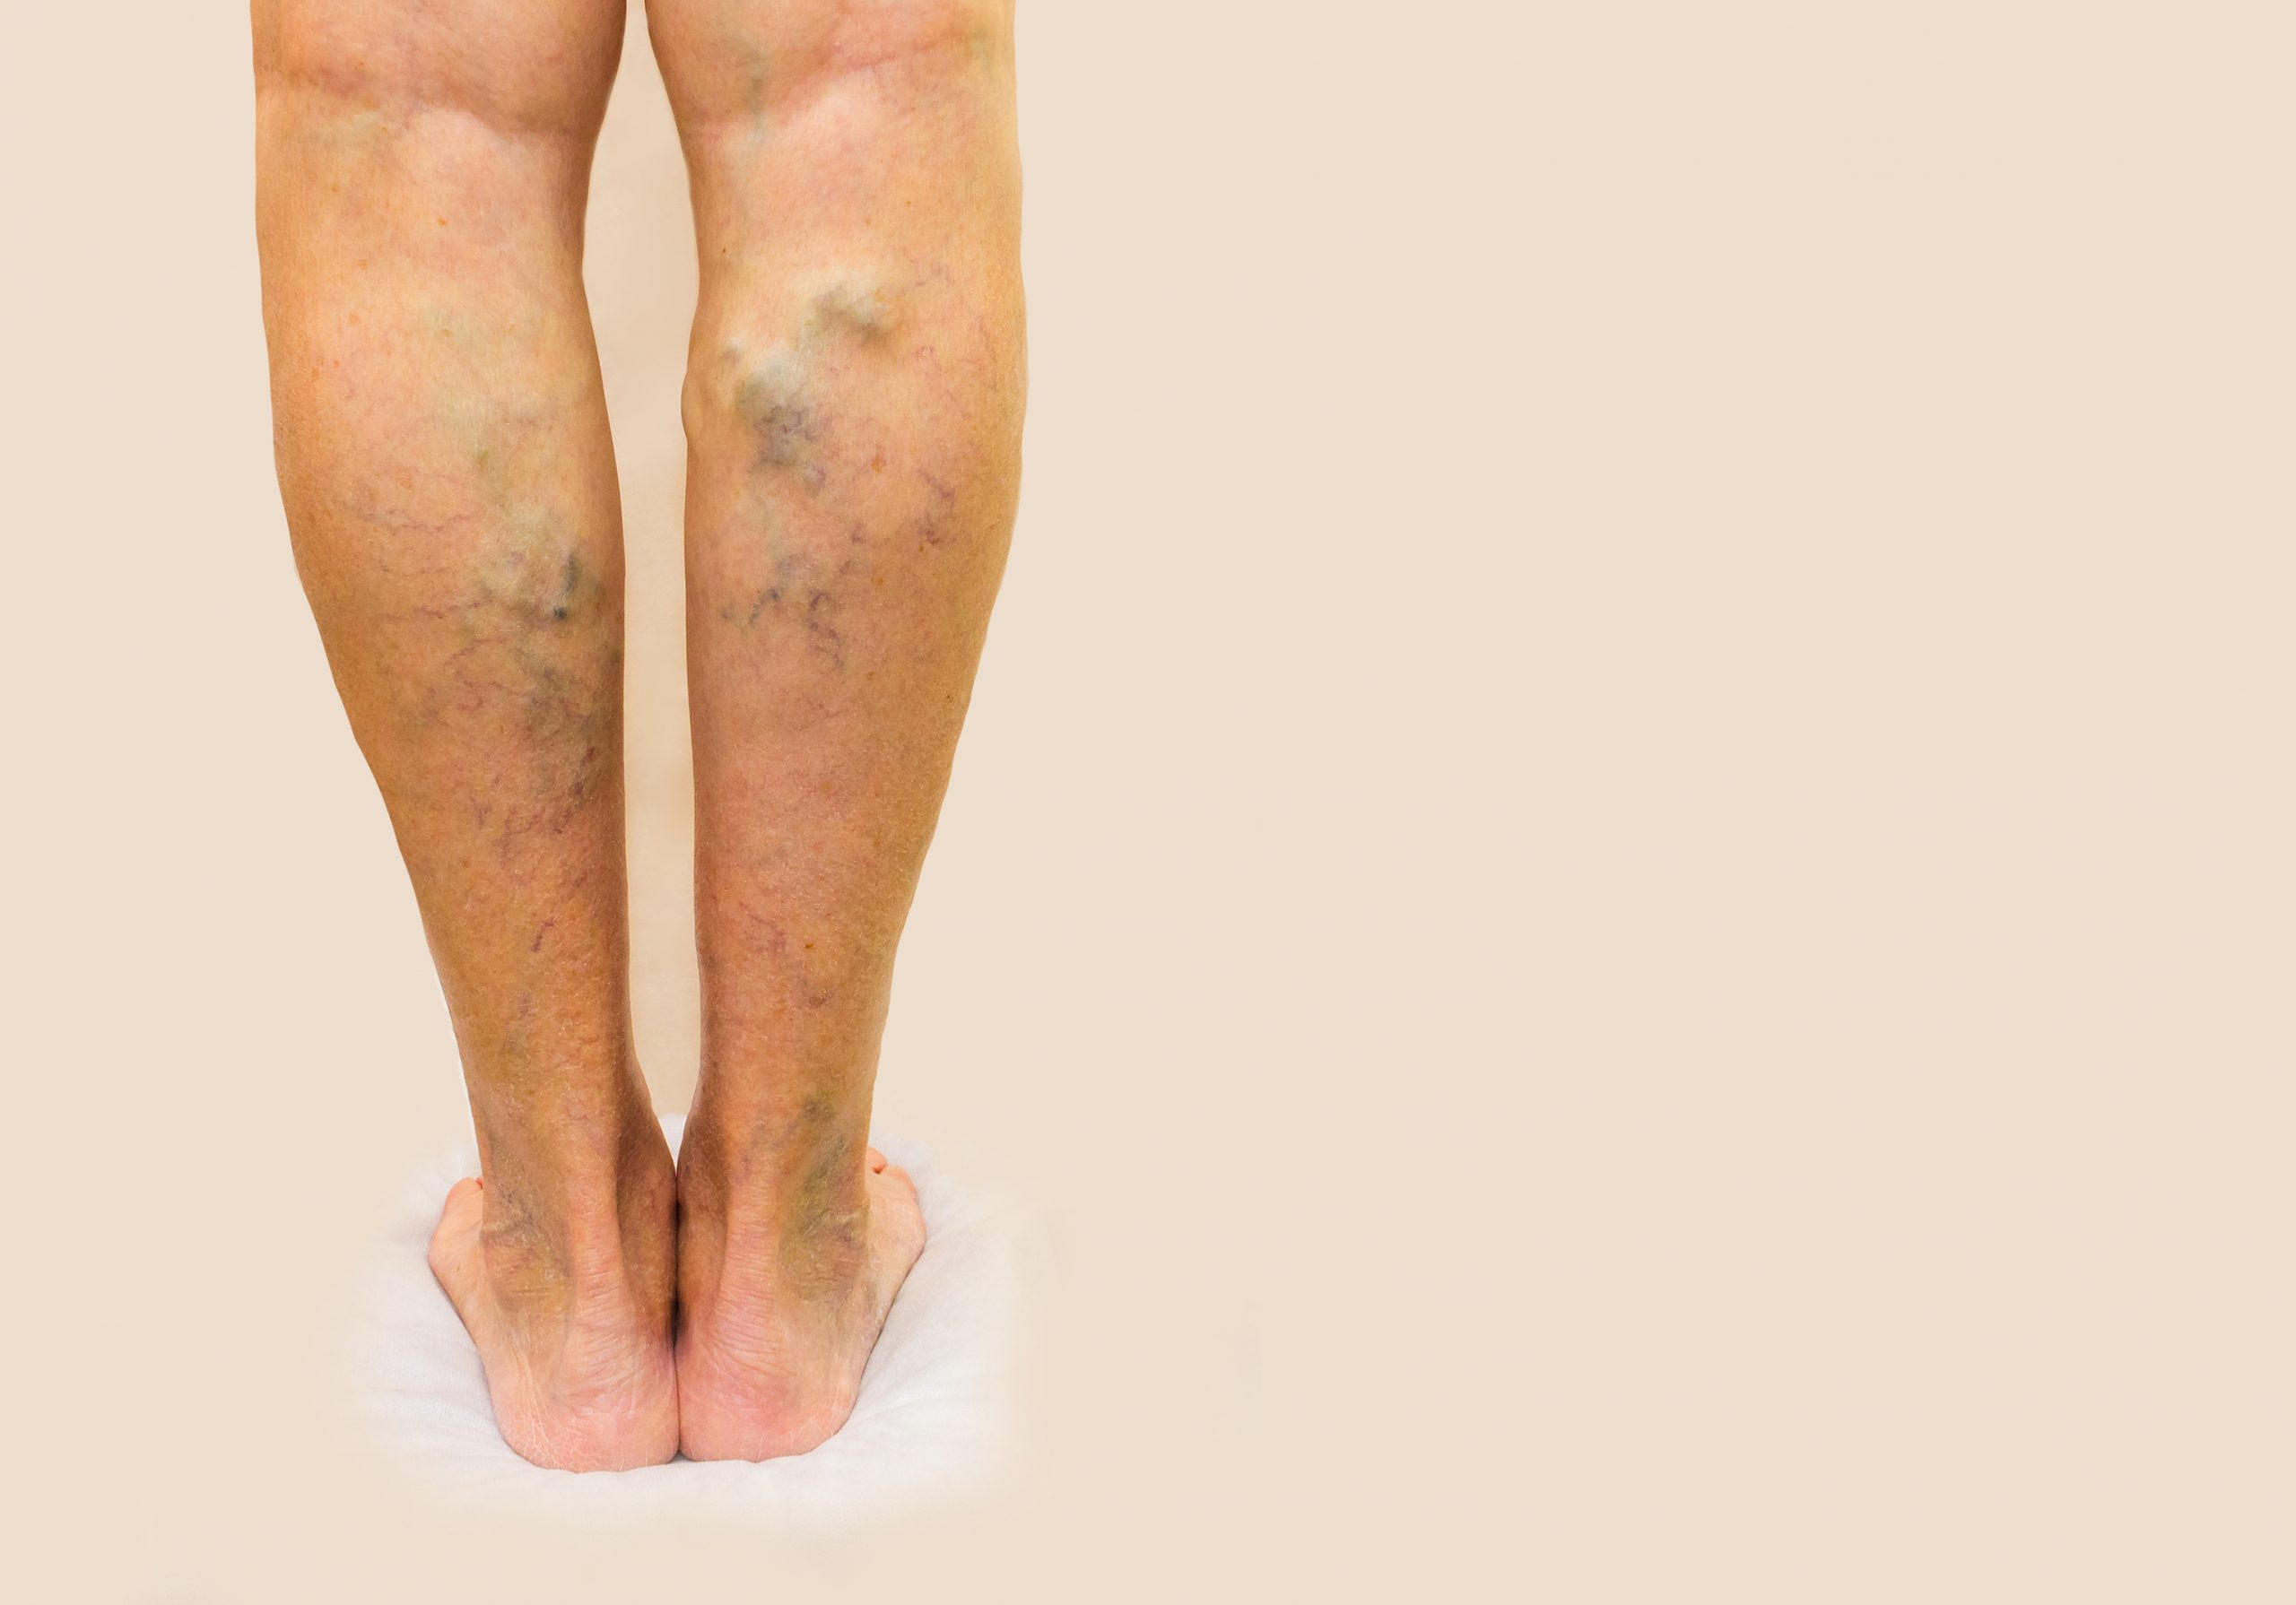 What Are Reticular Veins?